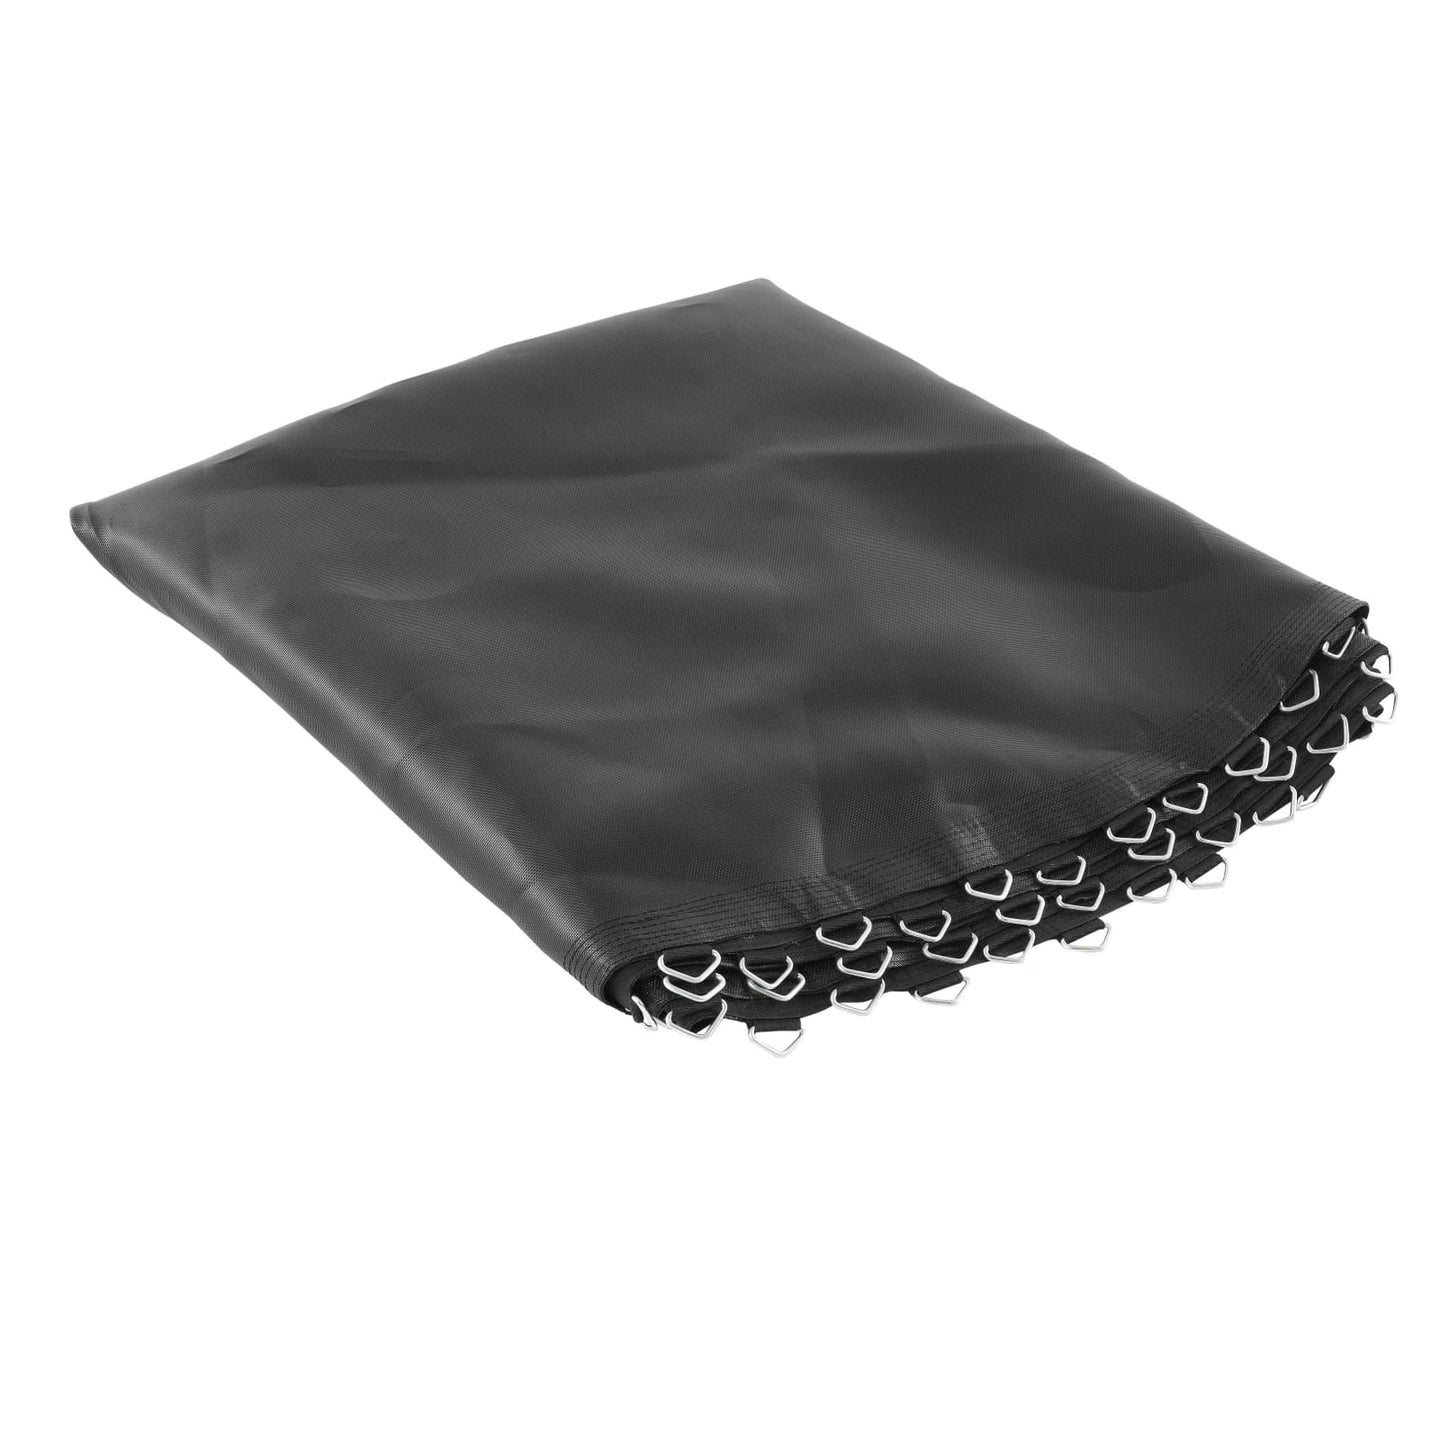 Upper Bounce Trampoline Replacement Jumping Mat Fits For 12 Ft. Round Frames W/ 72 V-Rings 5.5 Springs - Trampoline Replacements